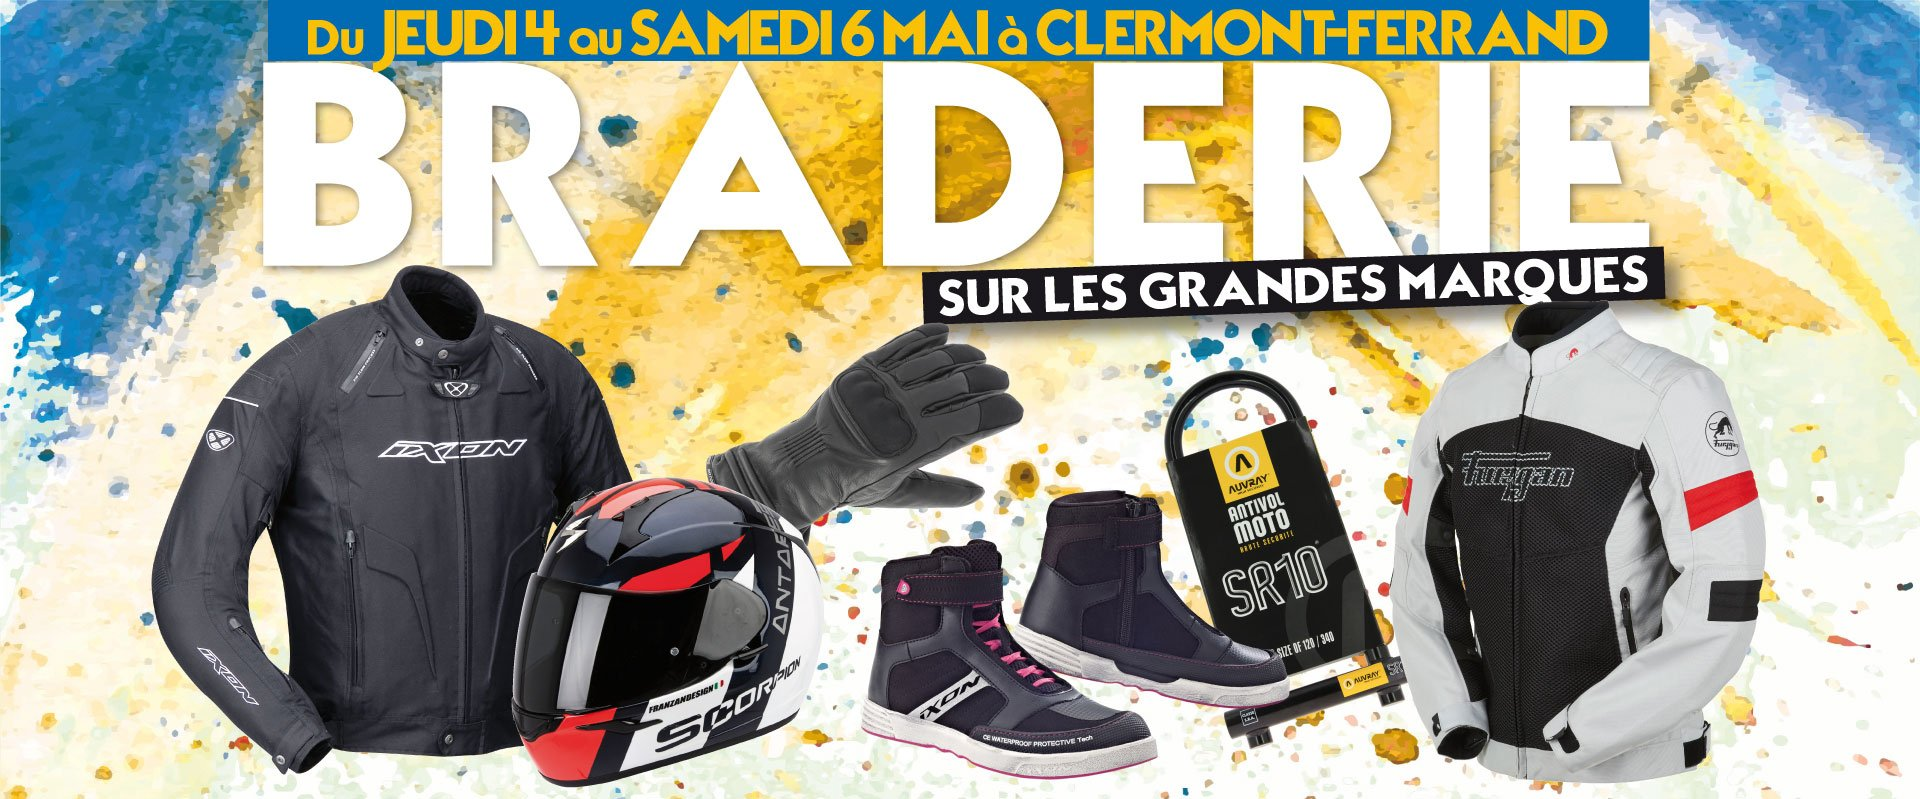 Braderie Cardy Clermont